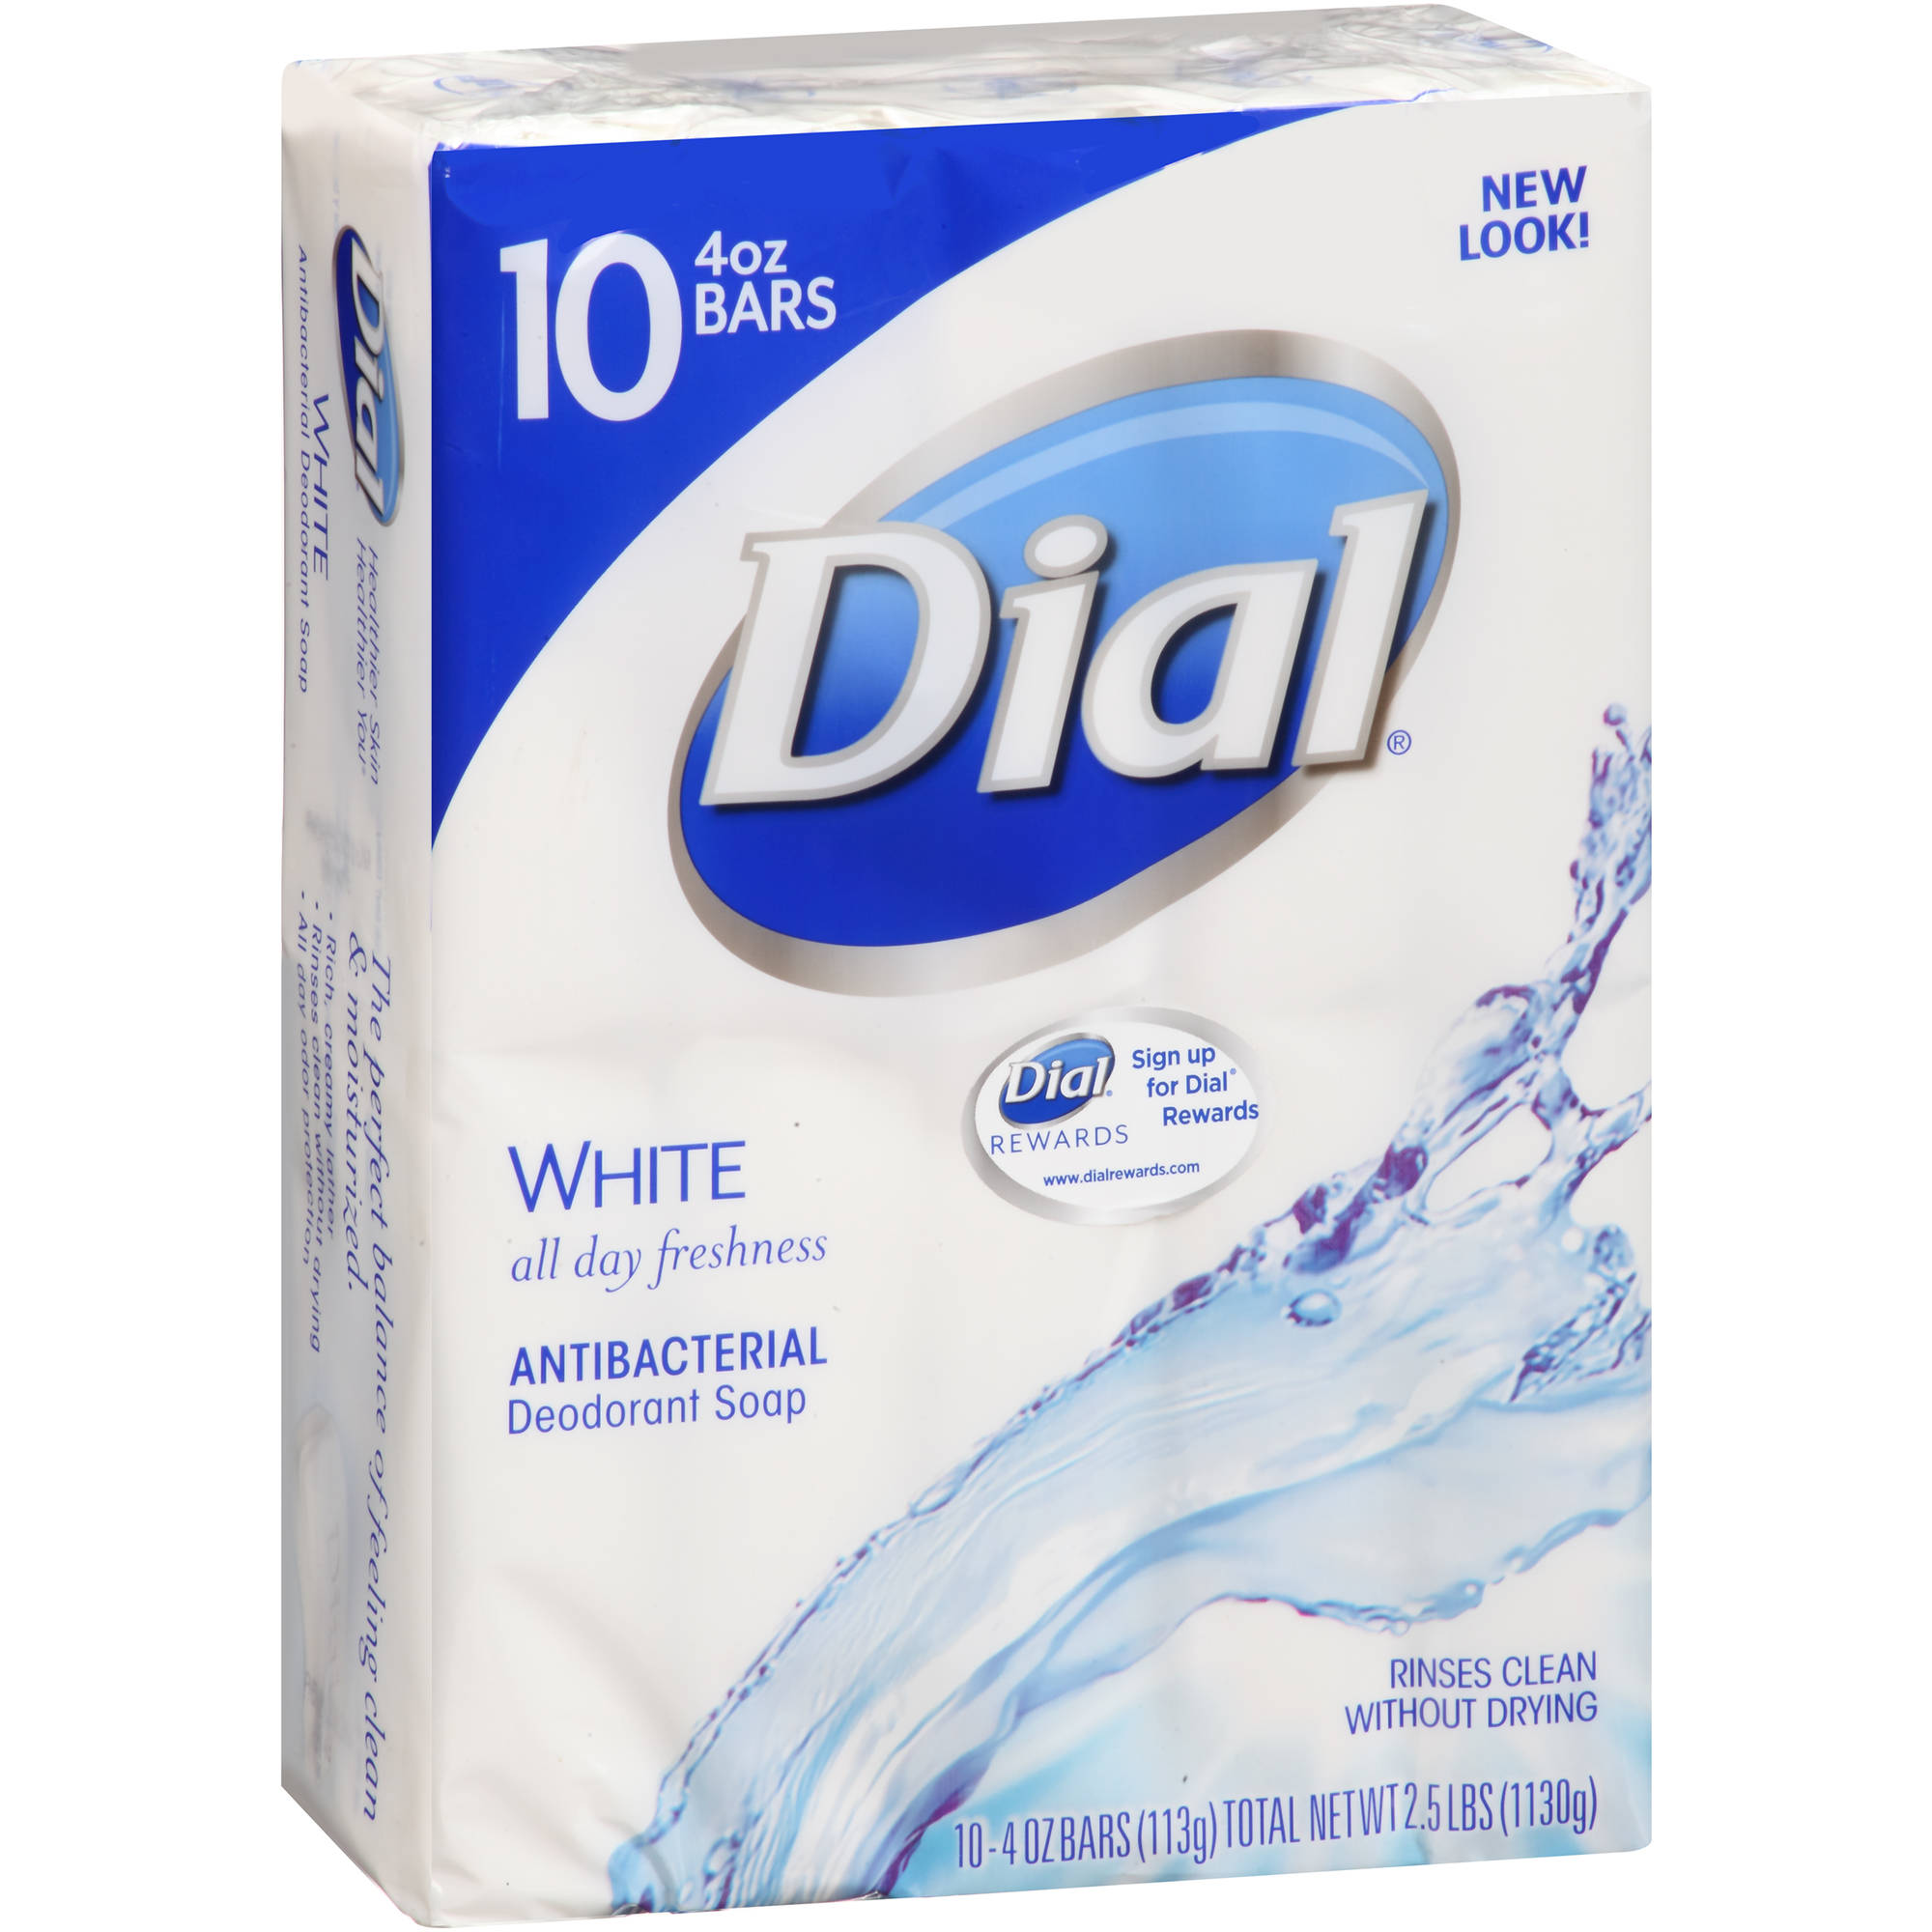 Dial White Antibacterial Deodorant Soap, 4 oz, 10 count